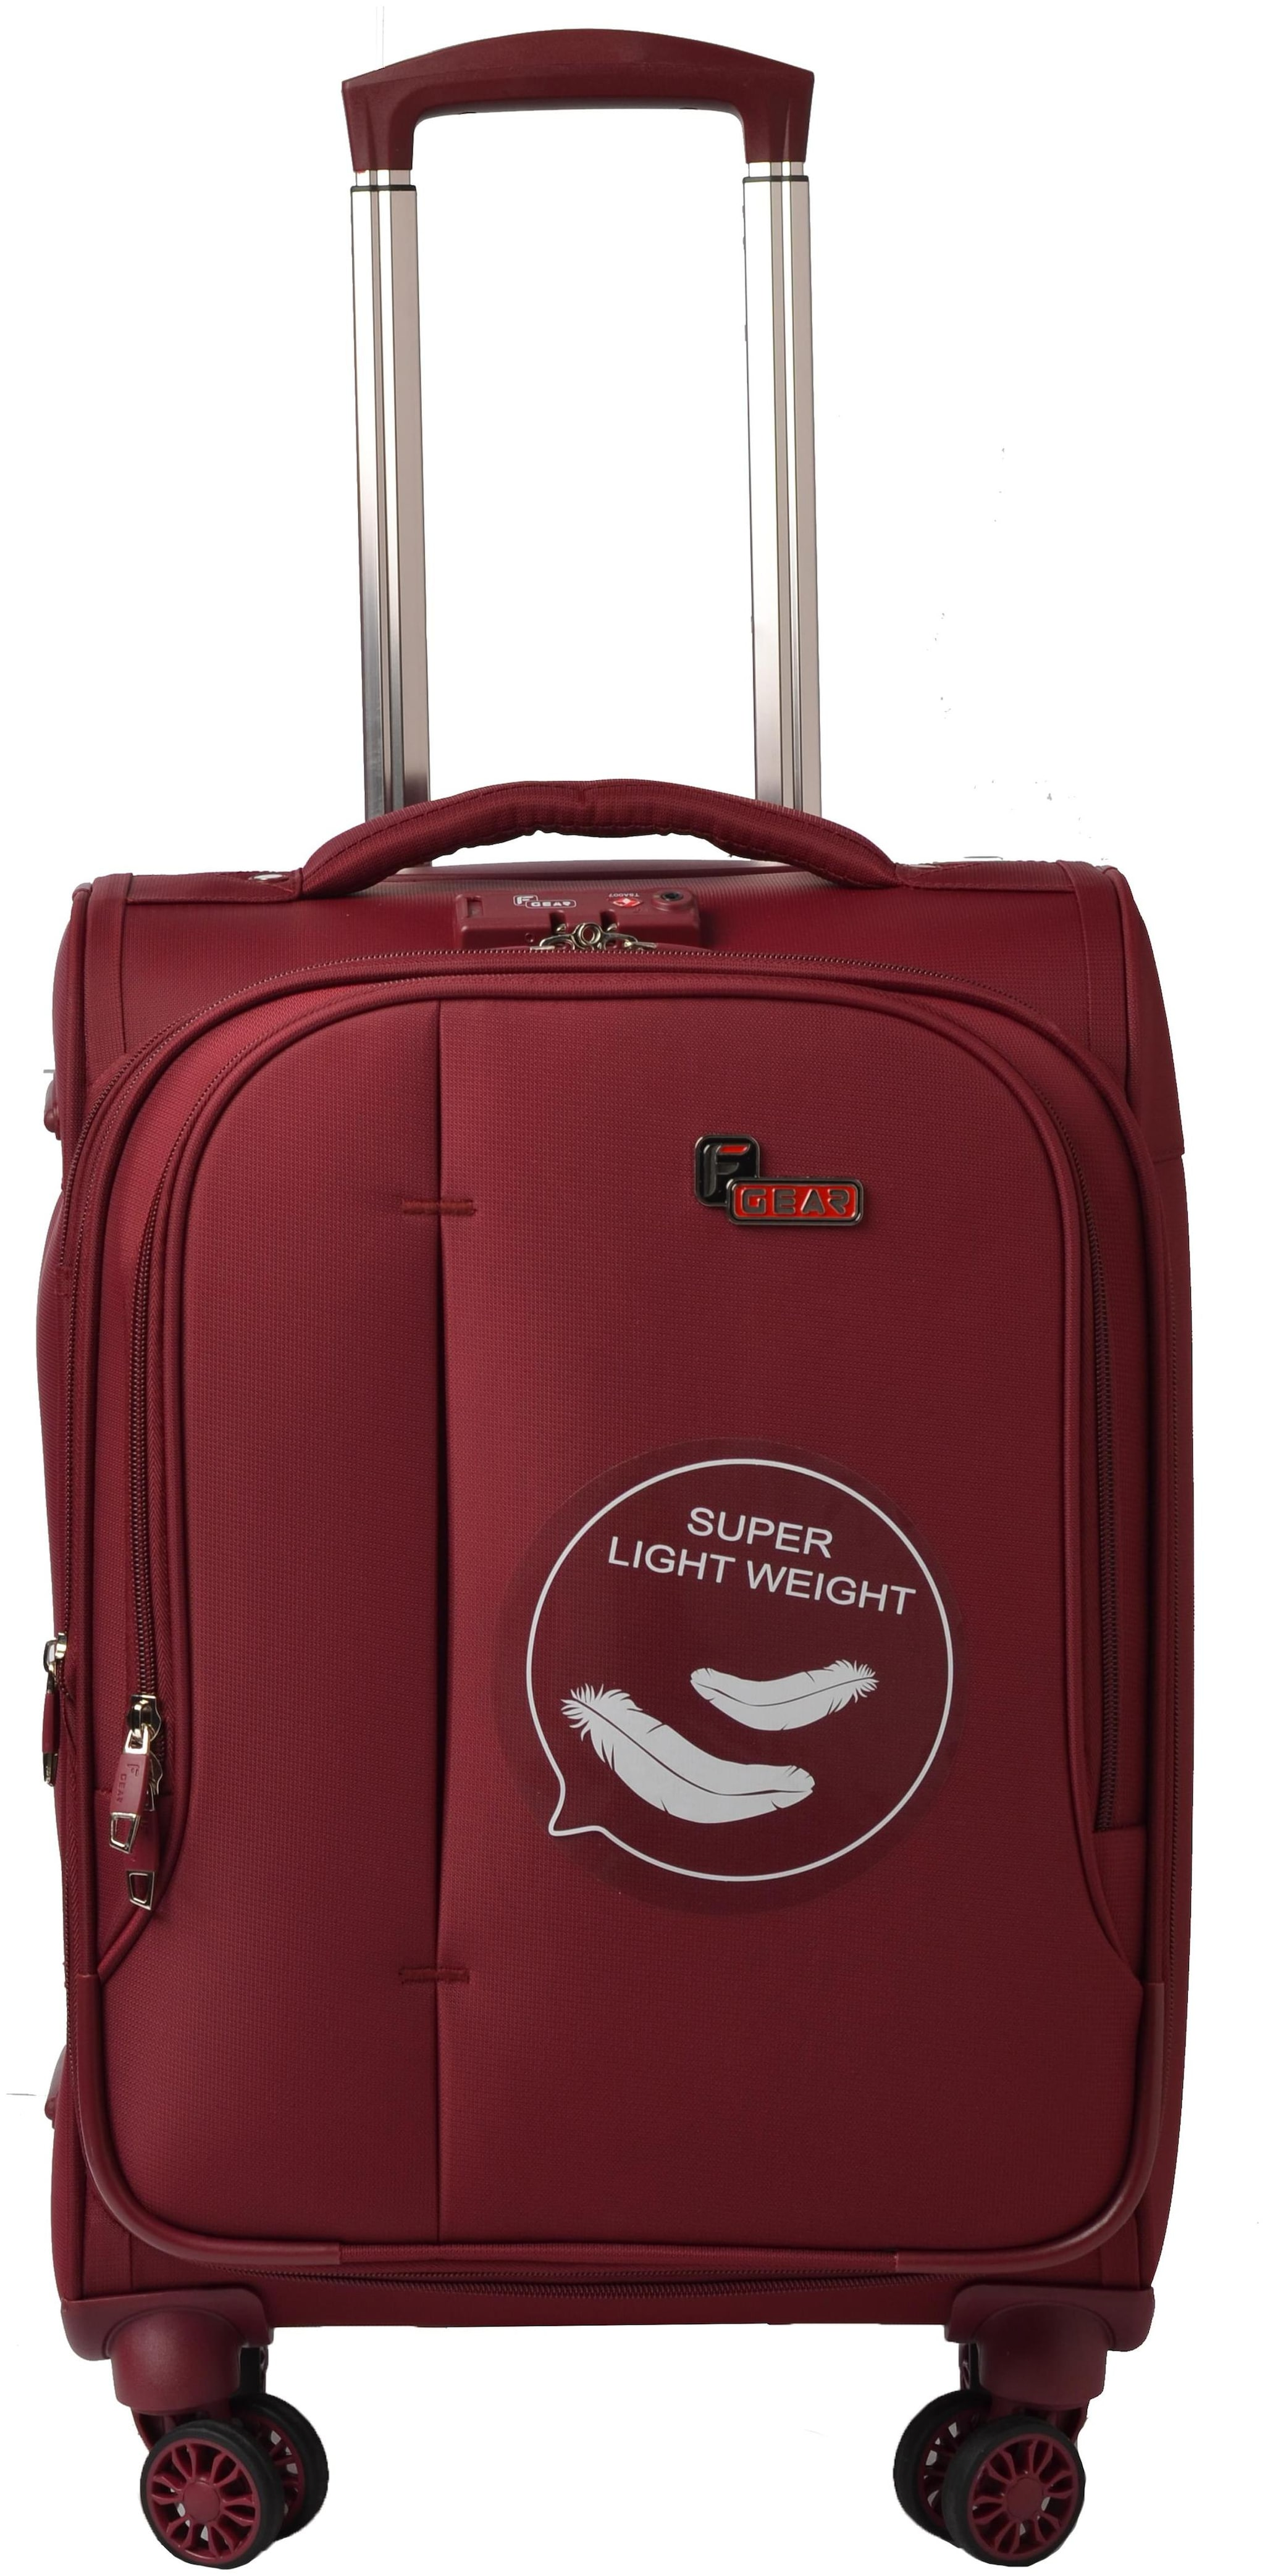 F Gear Cabin Size Hard Luggage Bag   Maroon , 4 Wheels